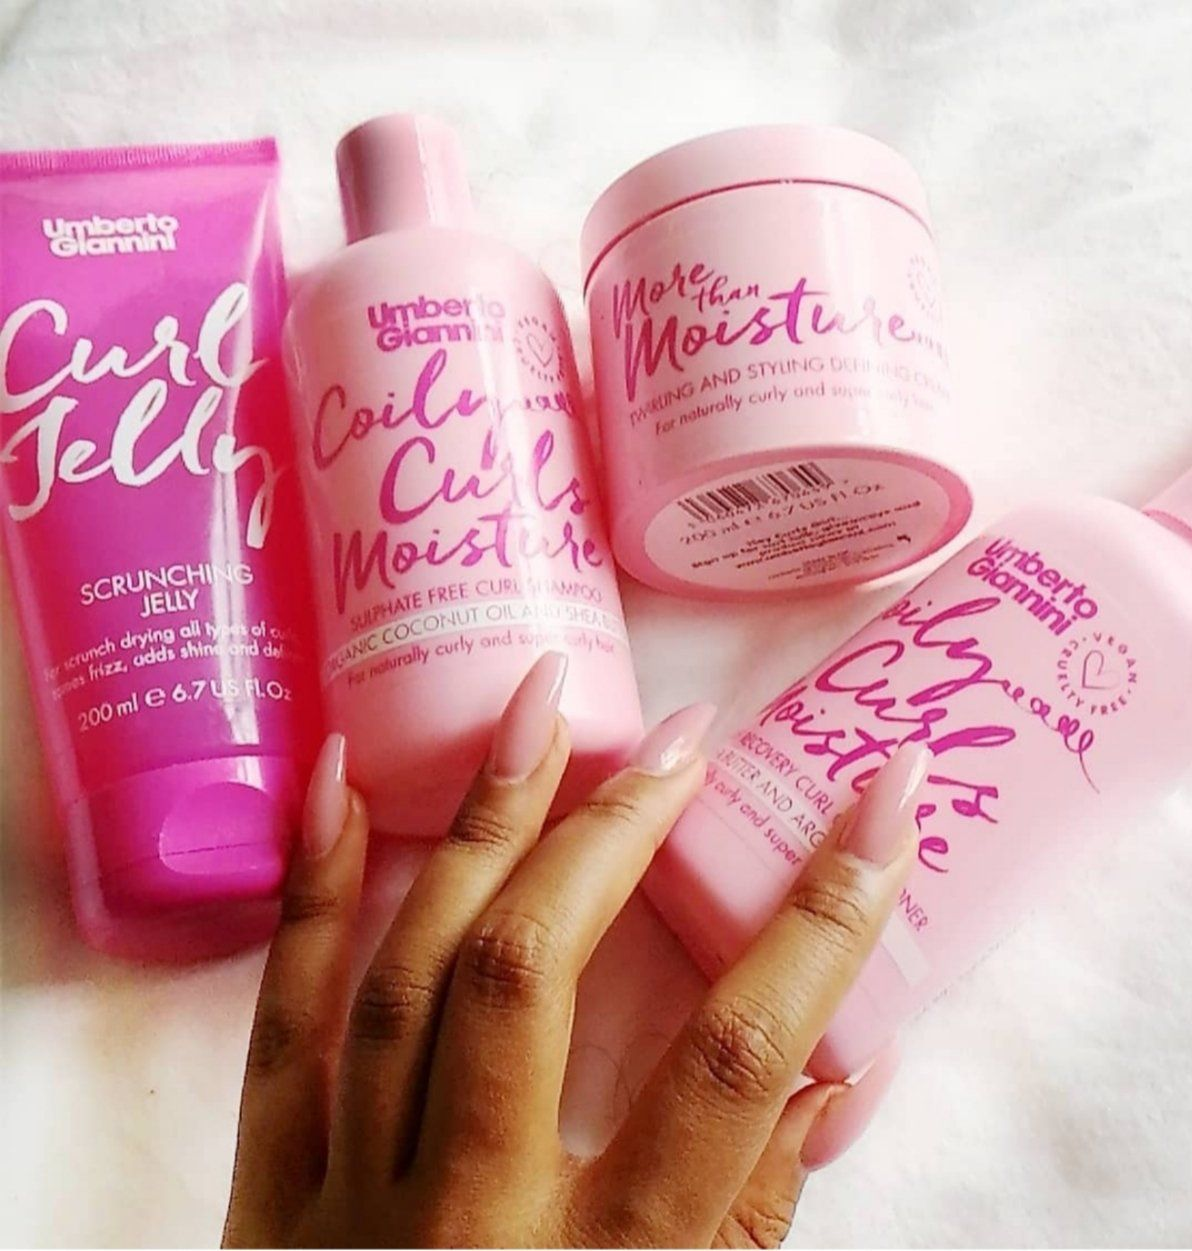 Umberto Giannini Coily Curls Moisture review. Does it